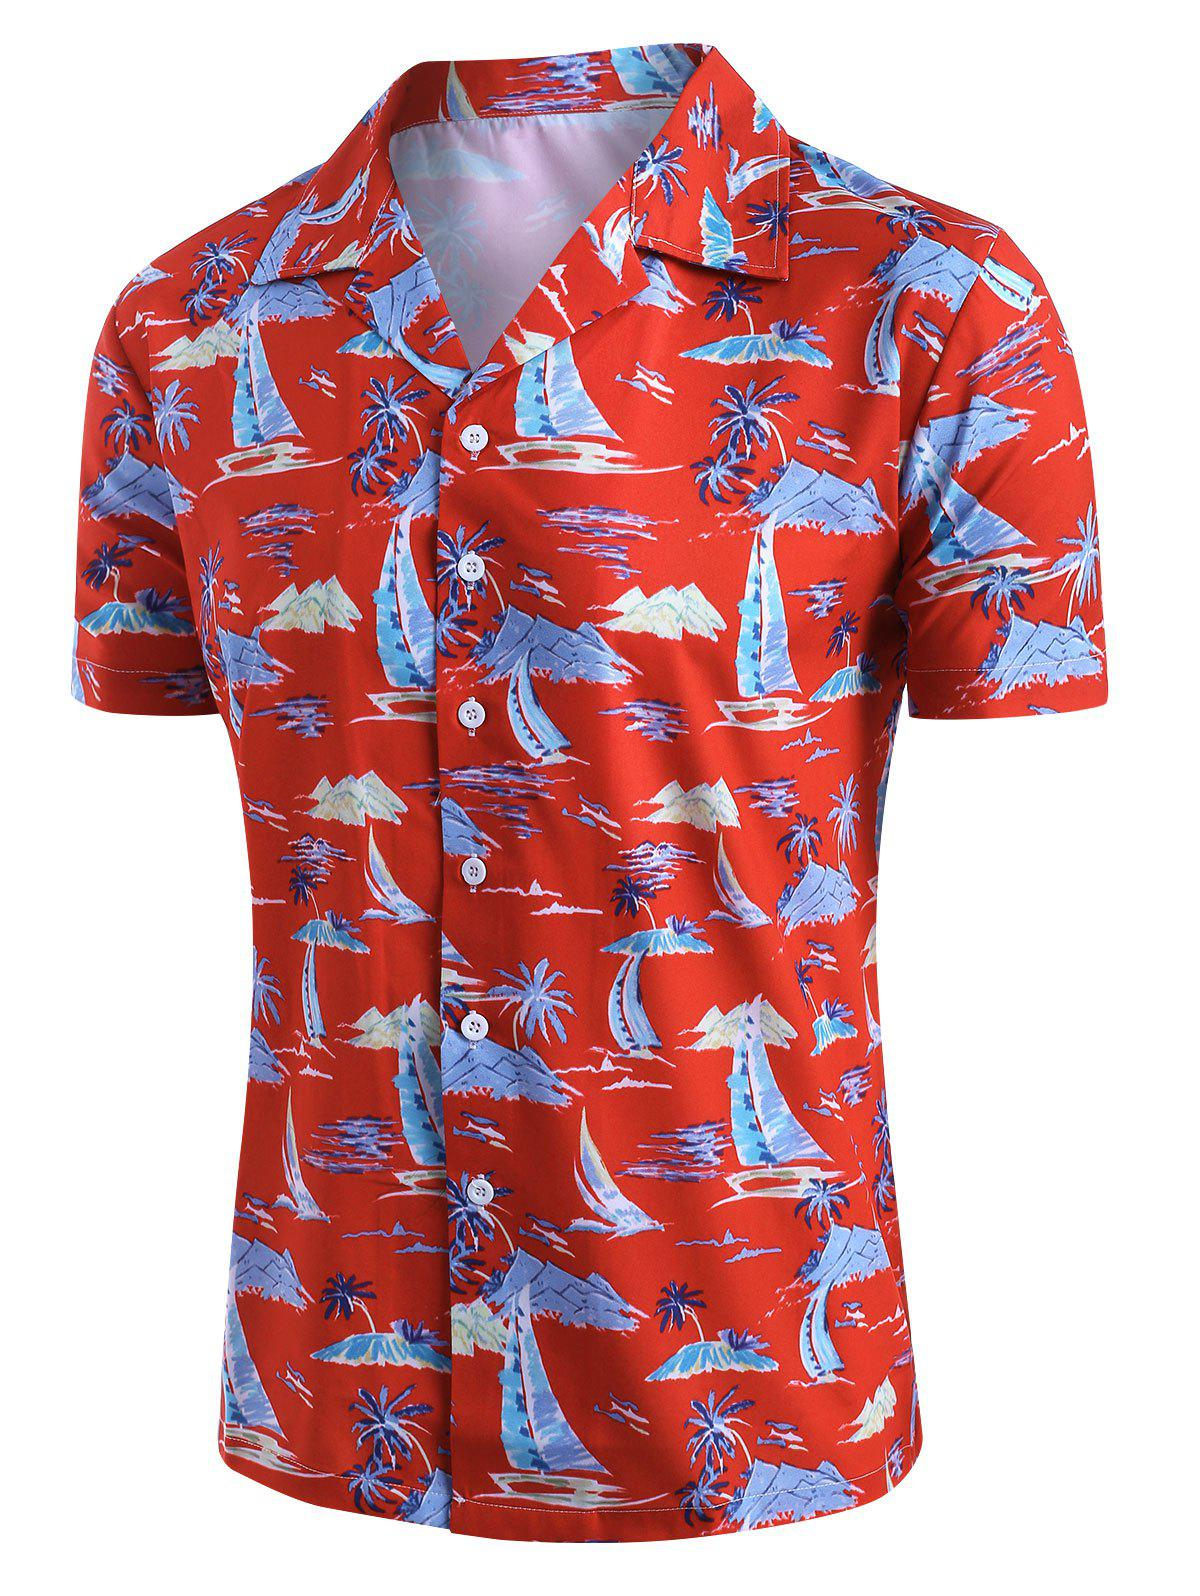 New Palm Tree Sailboat Print Button Up Hawaii Shirt